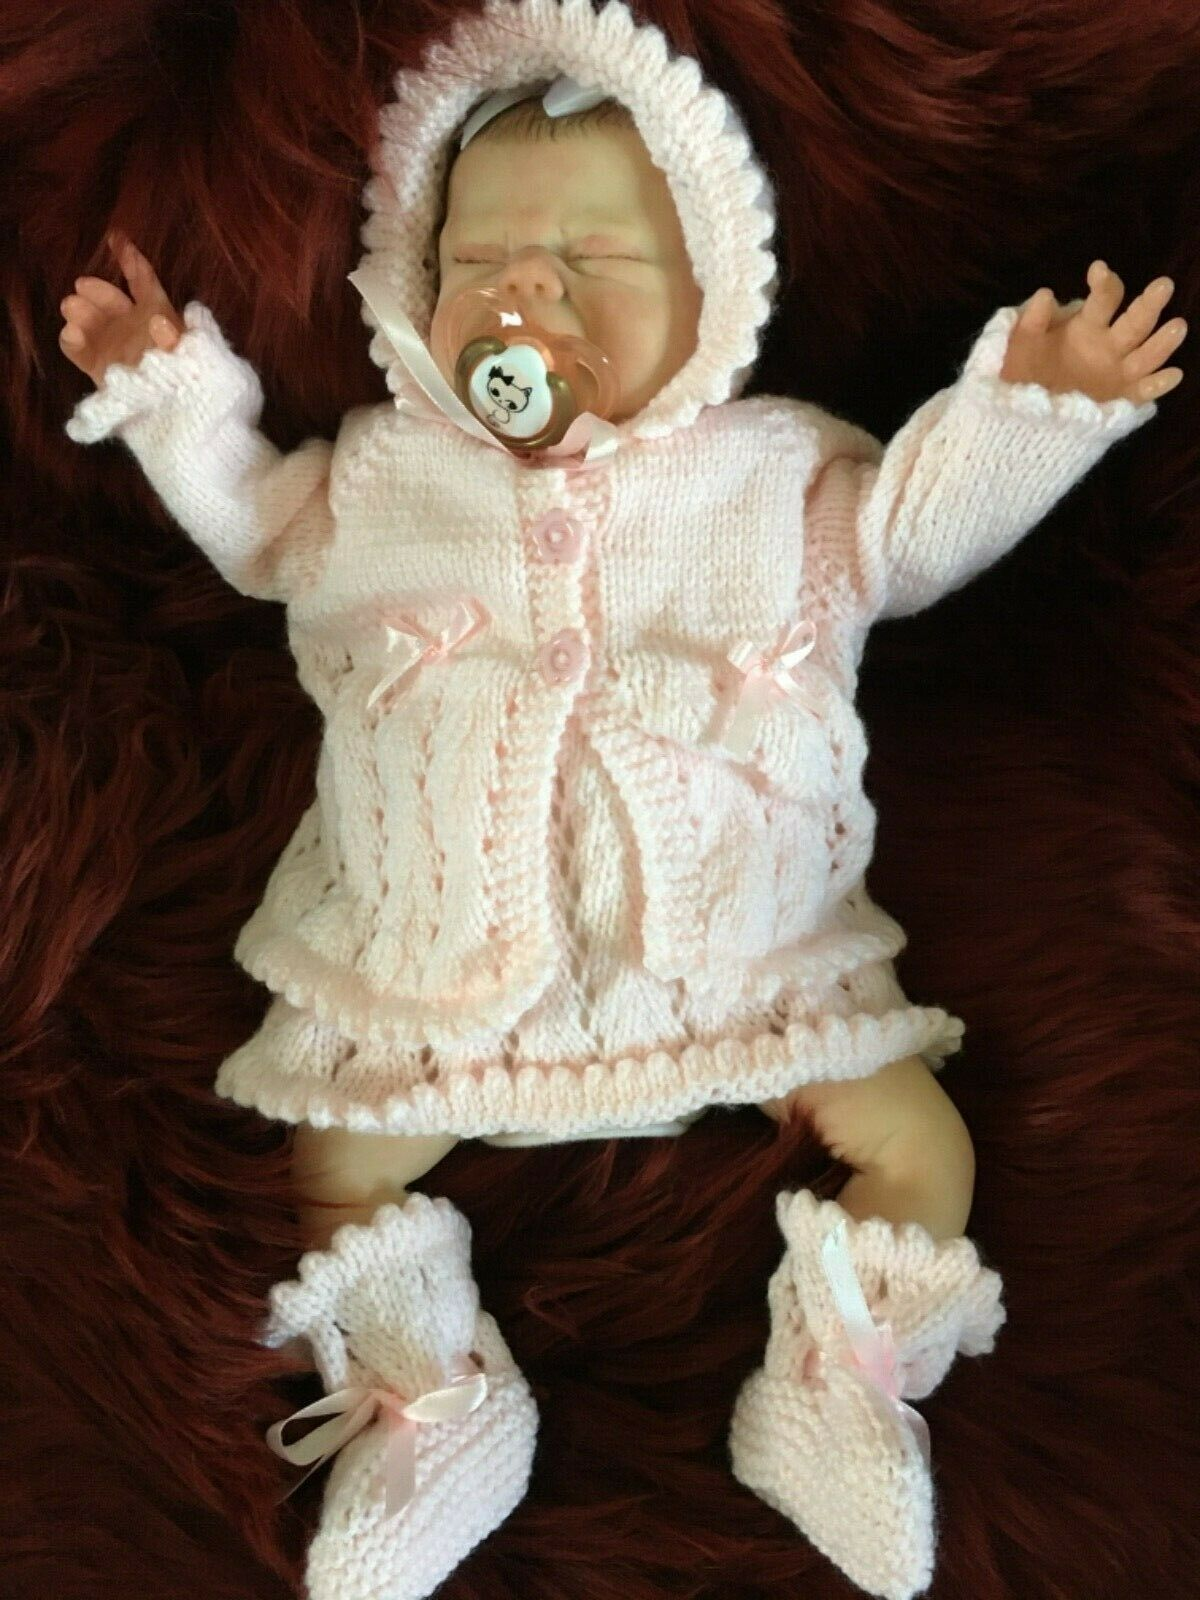 Reborn Tiny Maisie from the Vincent kit by Nikki Johnson.